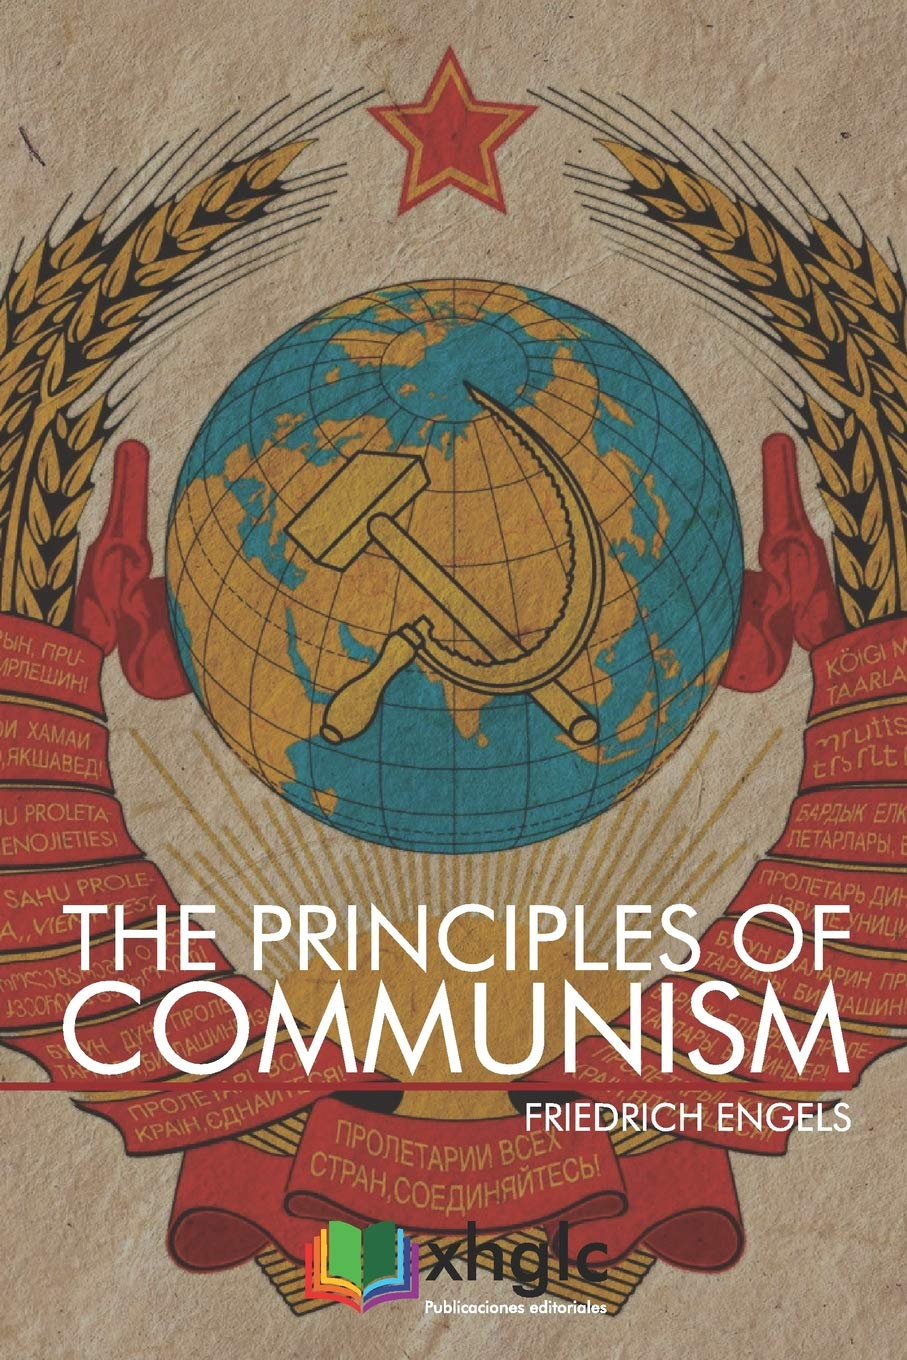 Buy The Principles of Communism Book Online at Low Prices in India   The Principles of Communism Reviews & Ratings - Amazon.in